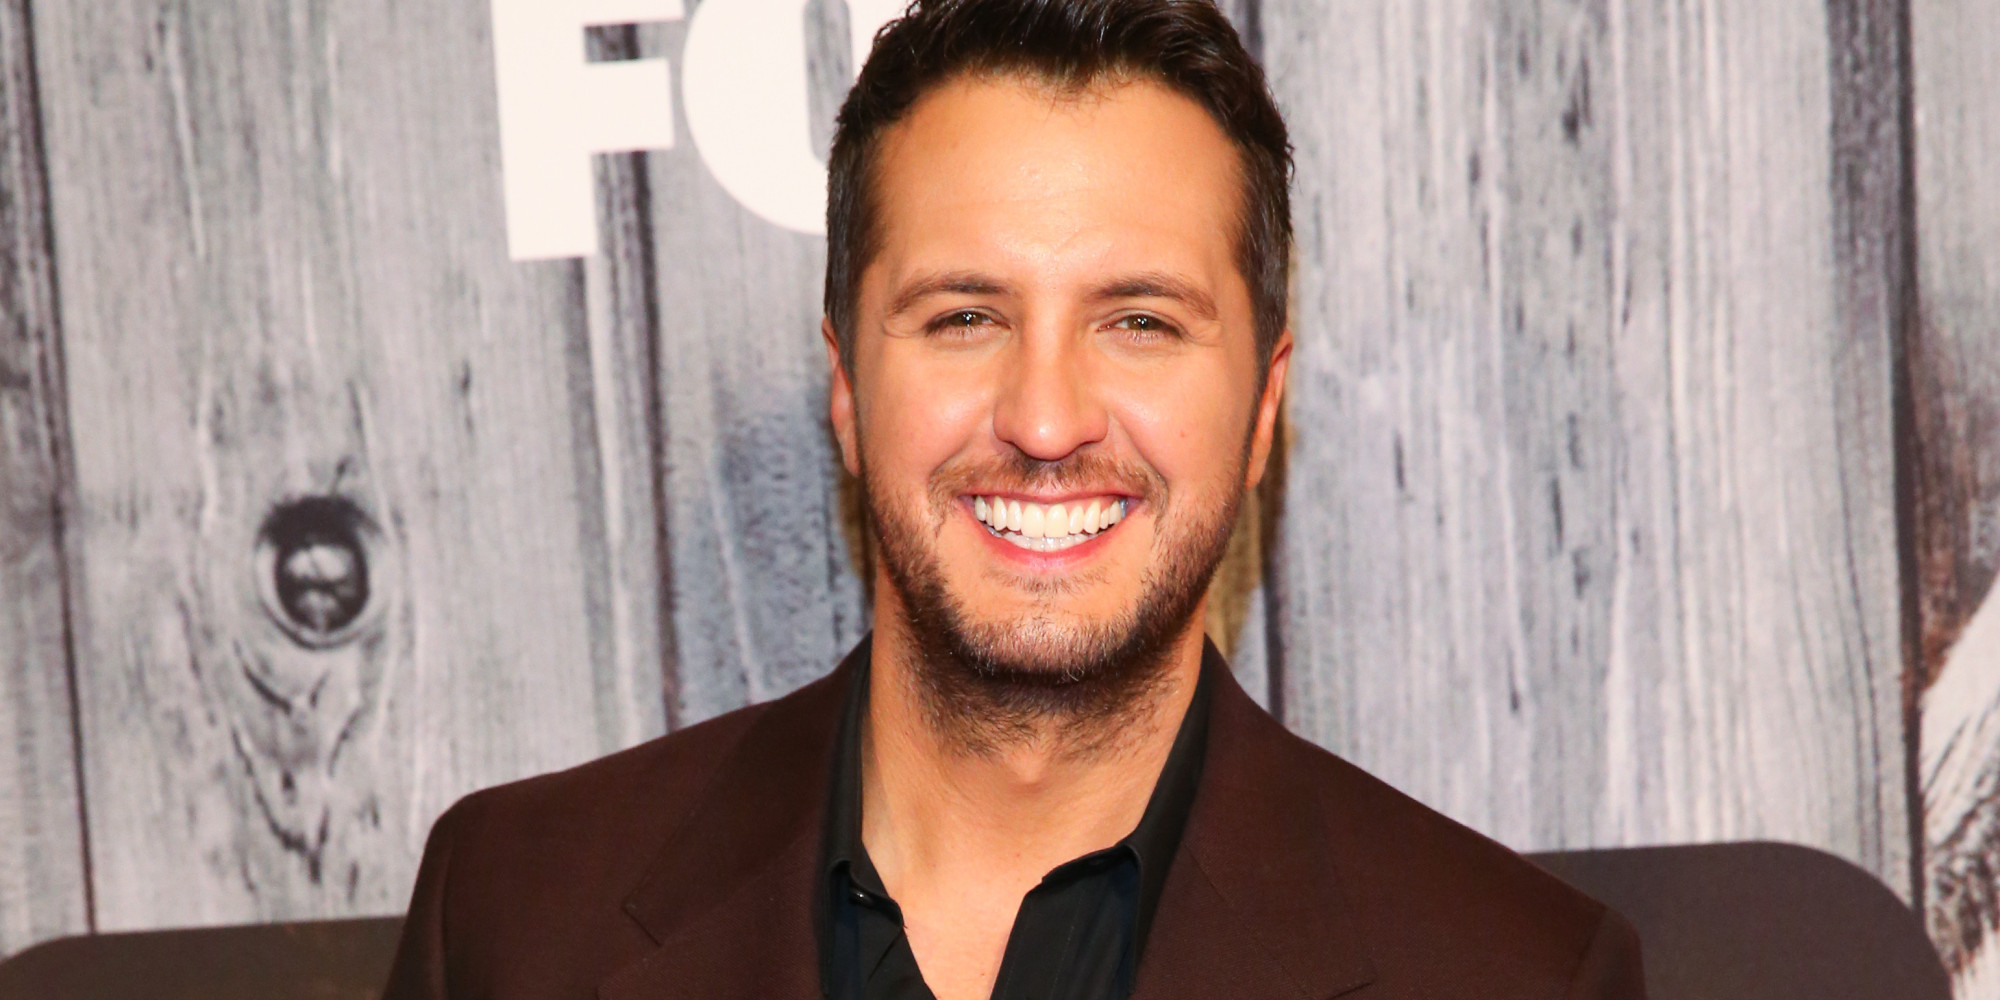 Luke Bryan Opens Up About Raising His Nephew After Brother